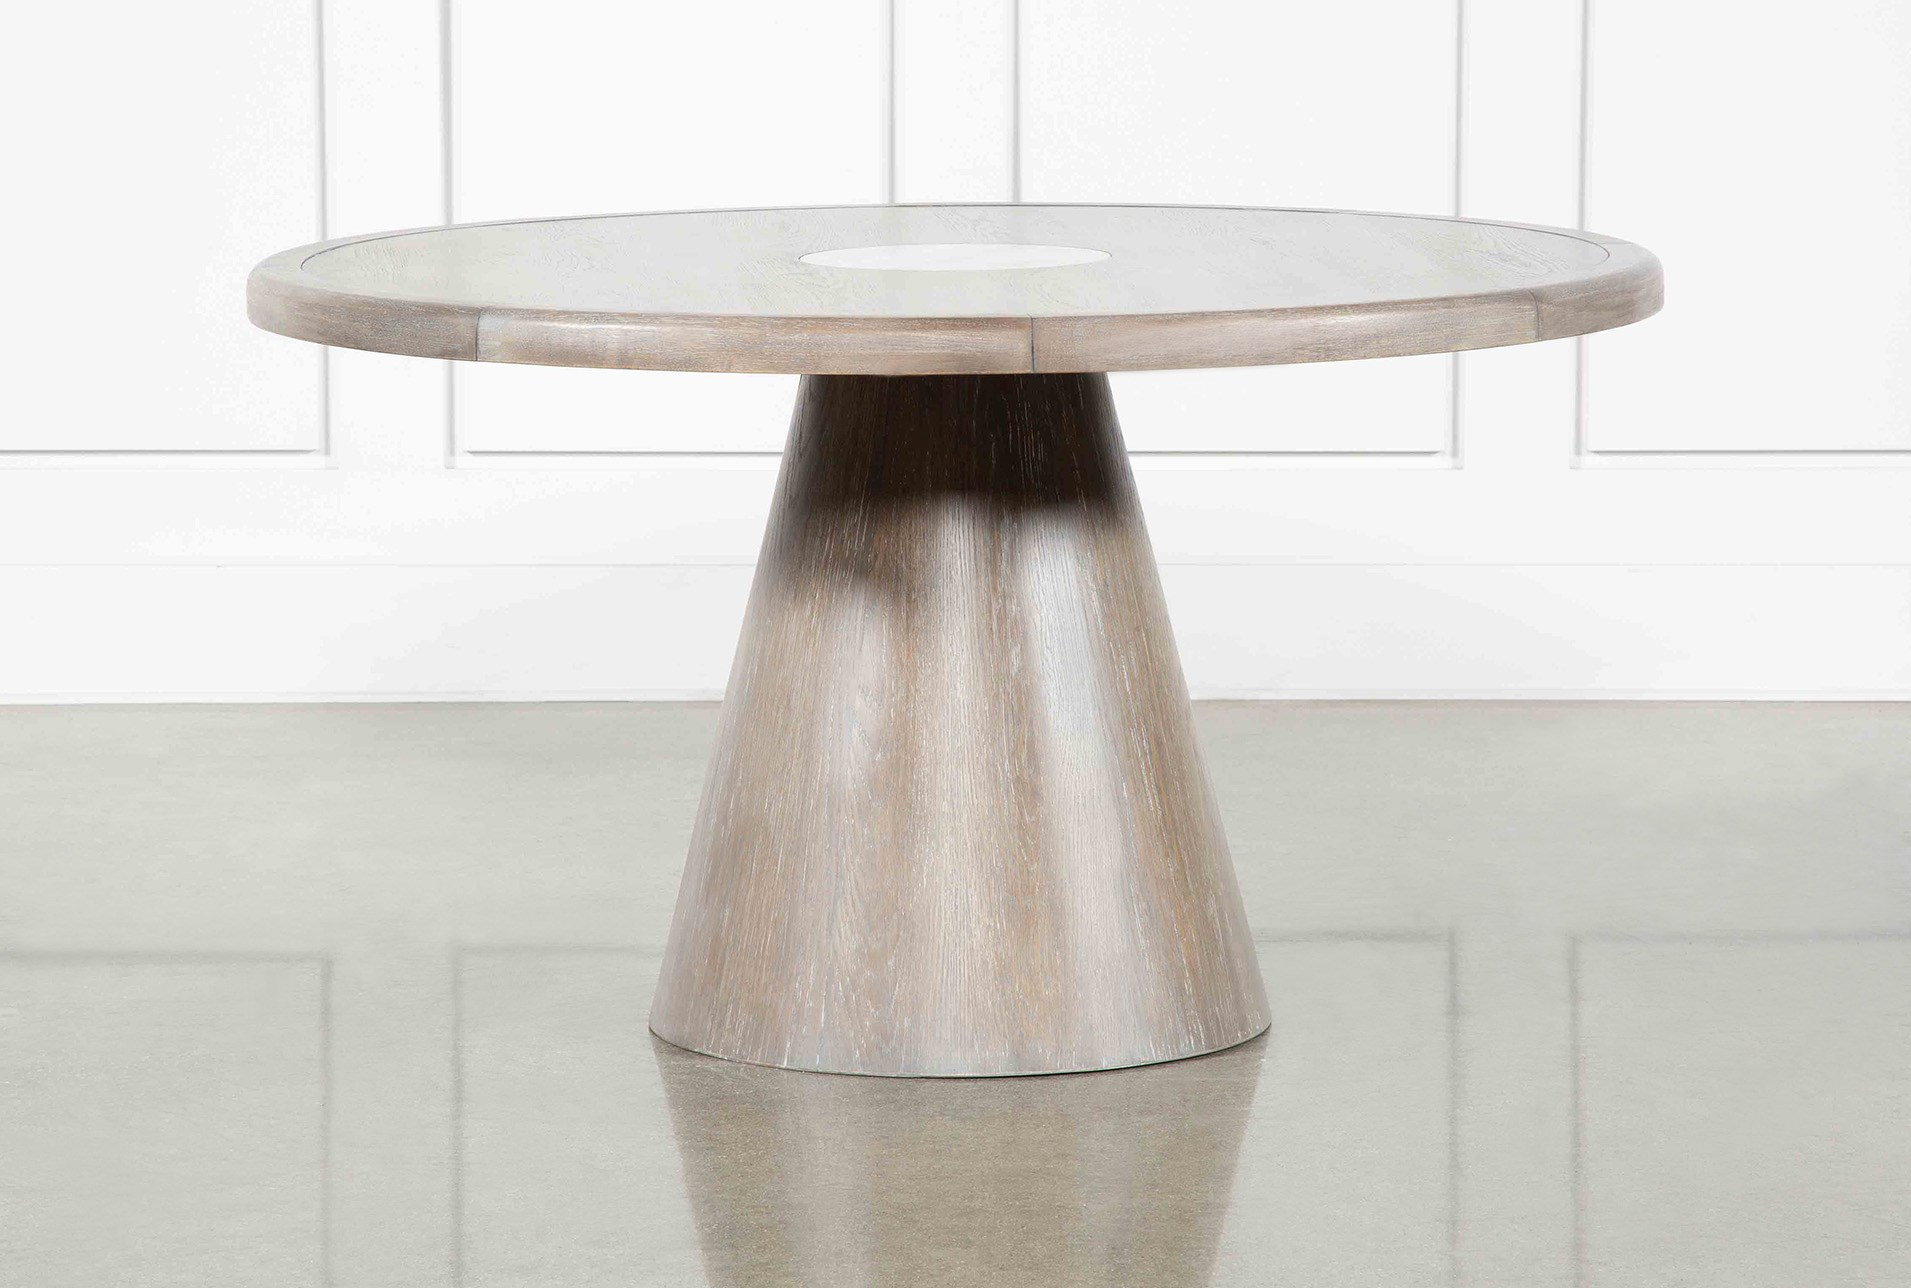 Pavilion Round Dining Table By Nate Berkus And Jeremiah